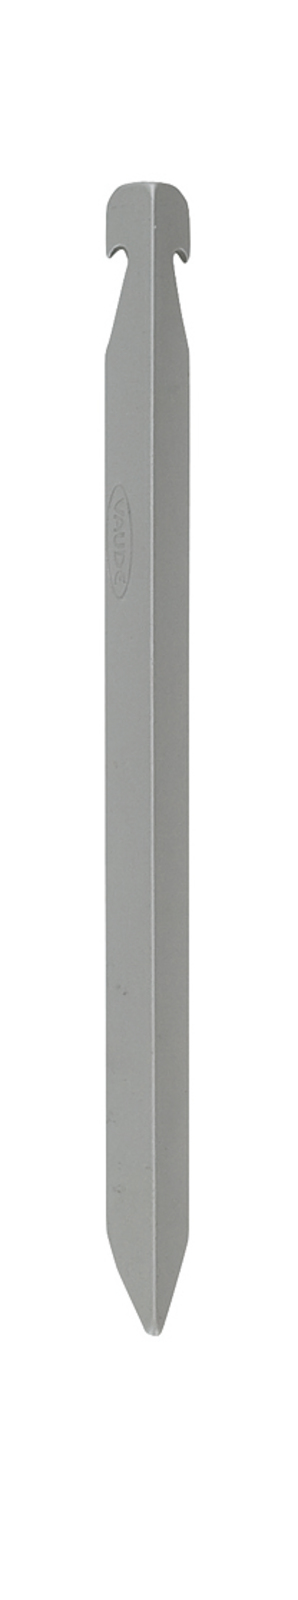 Vaude - V Peg 6063 18 cm (VPE6) - Tent Stakes